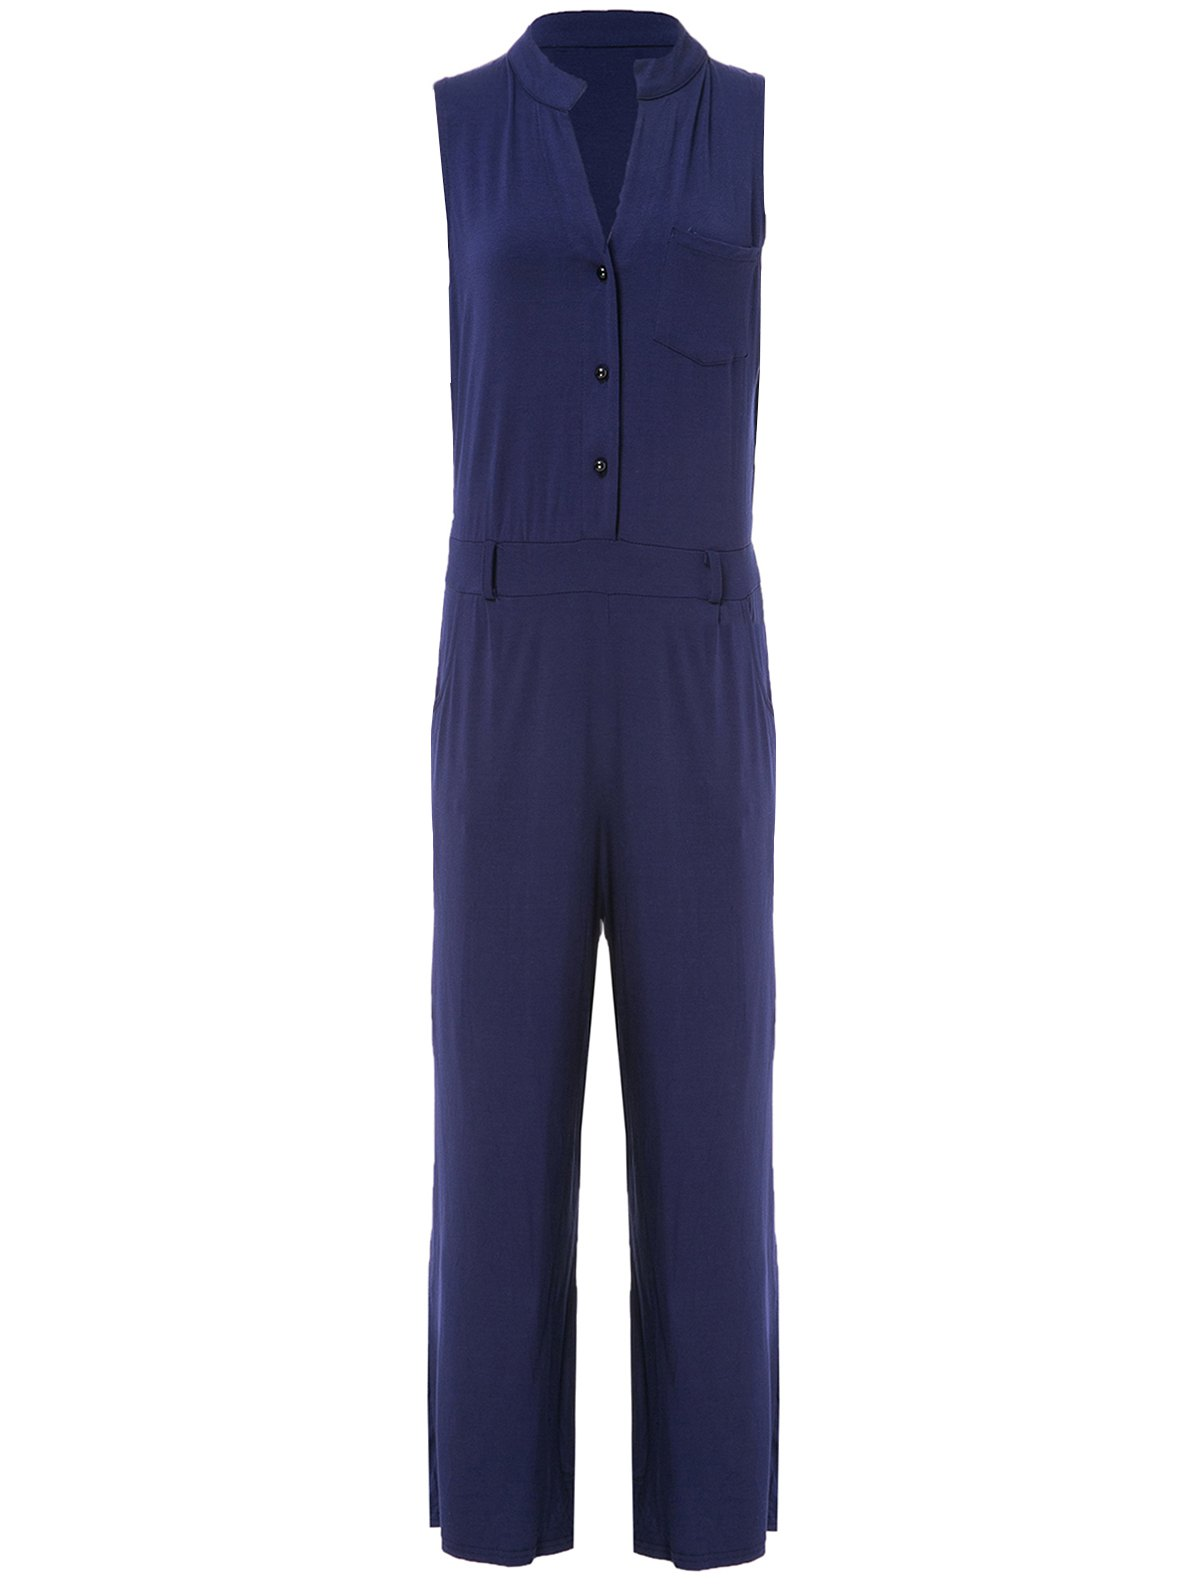 Elegant Purplish Blue Stand Collar Sleeveless Jumpsuit For Women - PURPLISH BLUE L